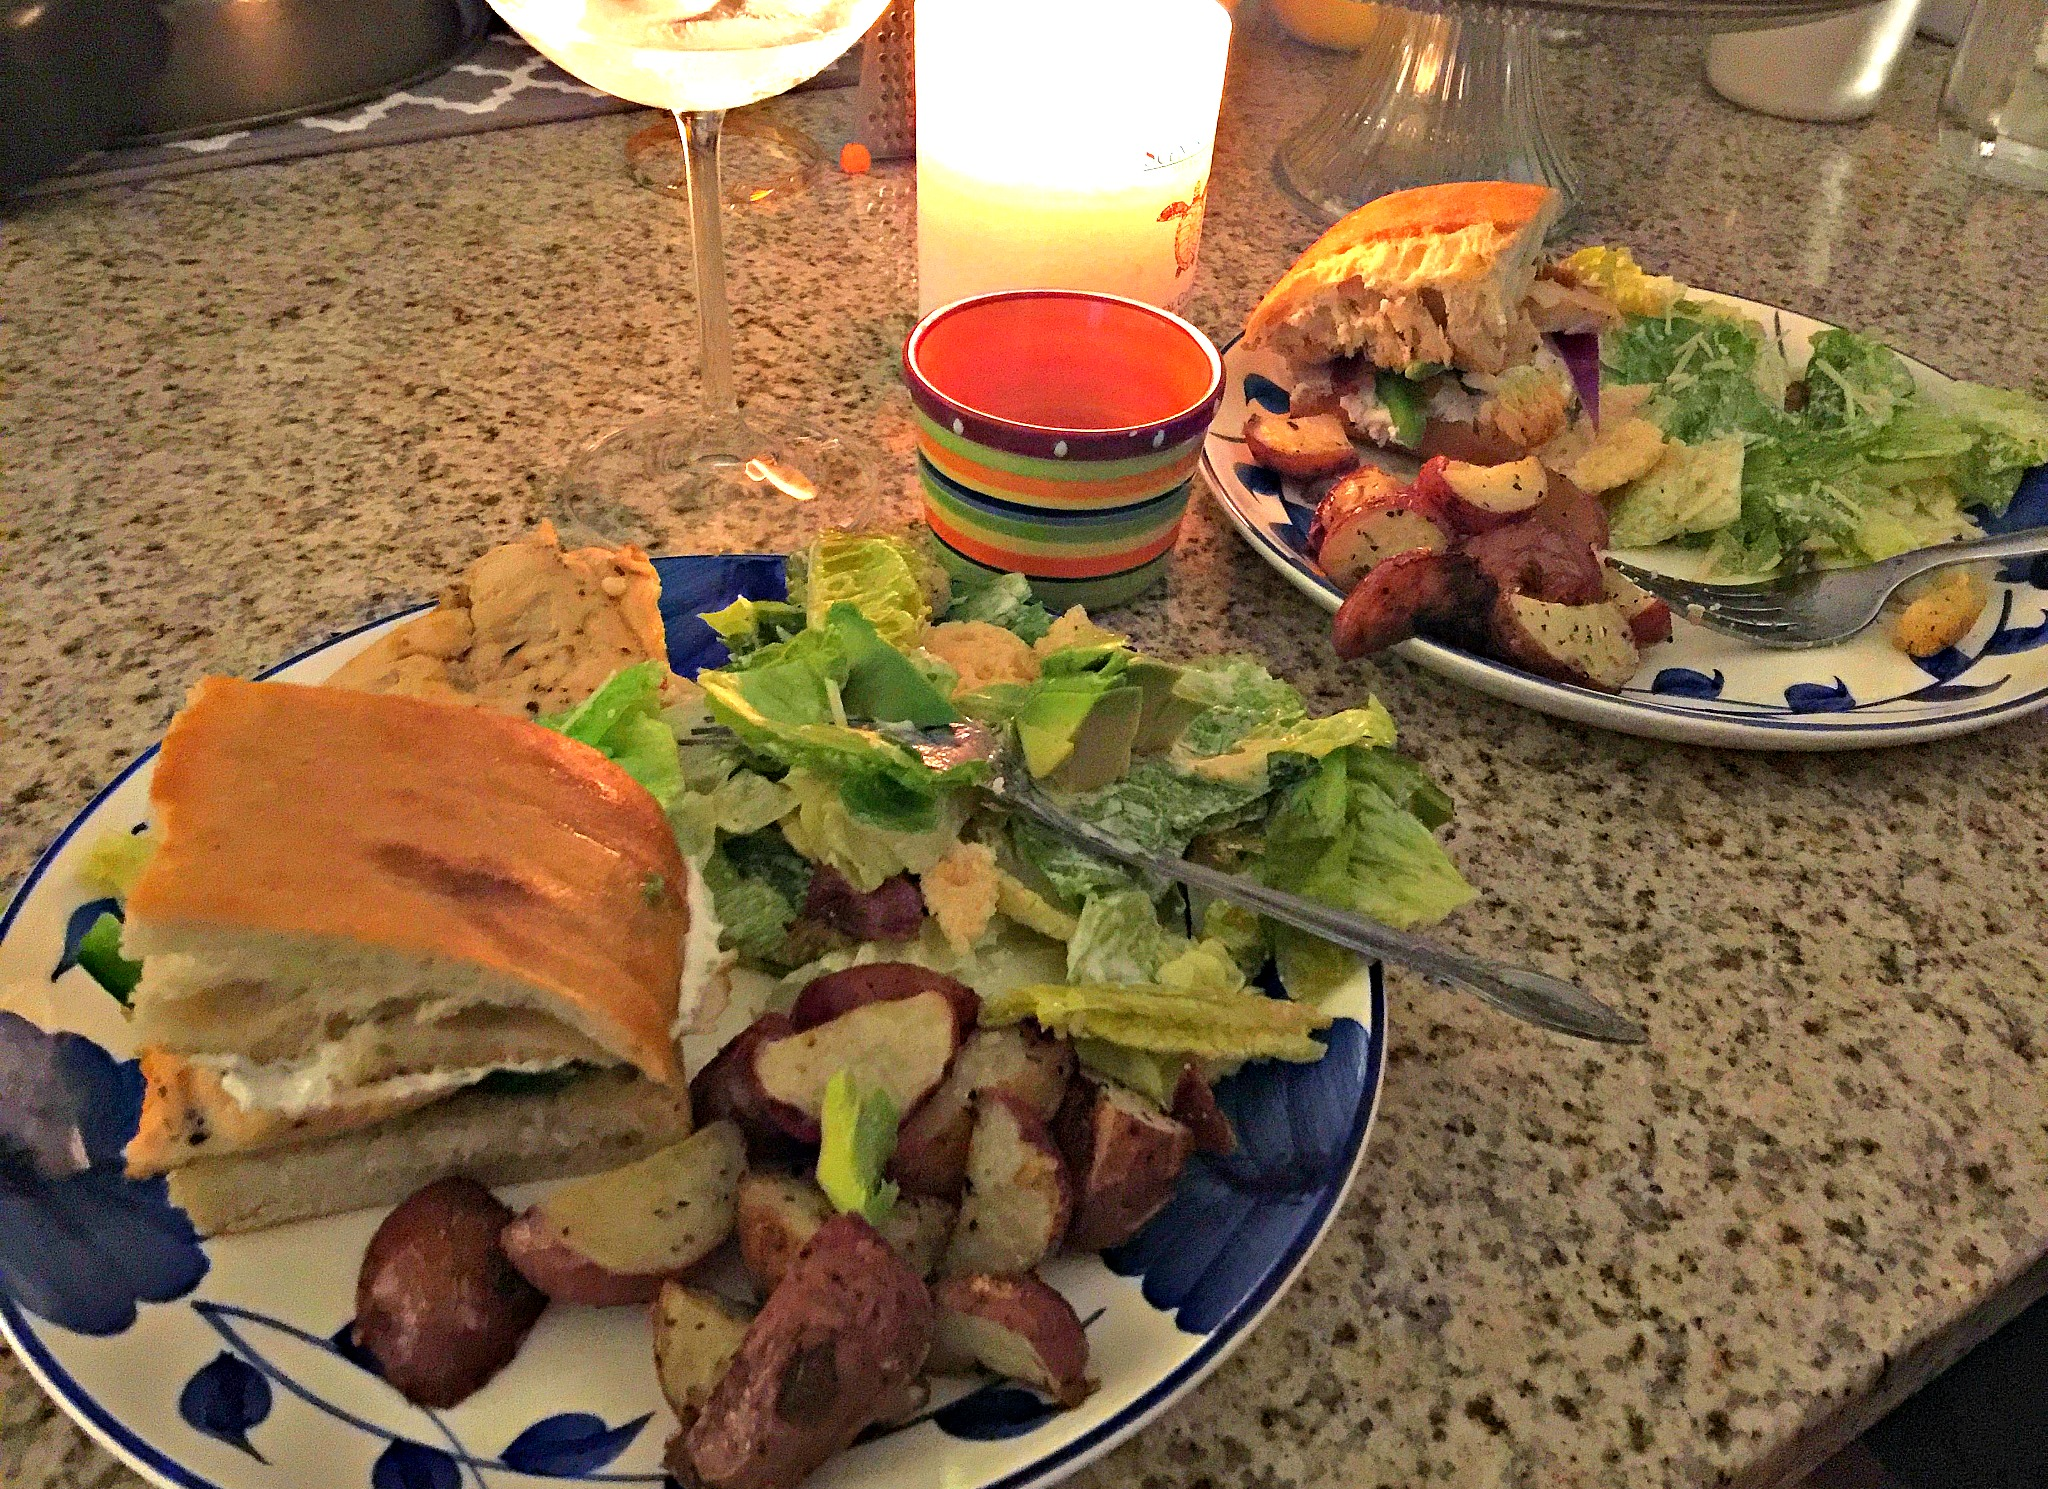 Avocado Bacon Chicken Sandwiches with Lemon Garlic Cream Cheese on Toasted Ciabatta Bread.